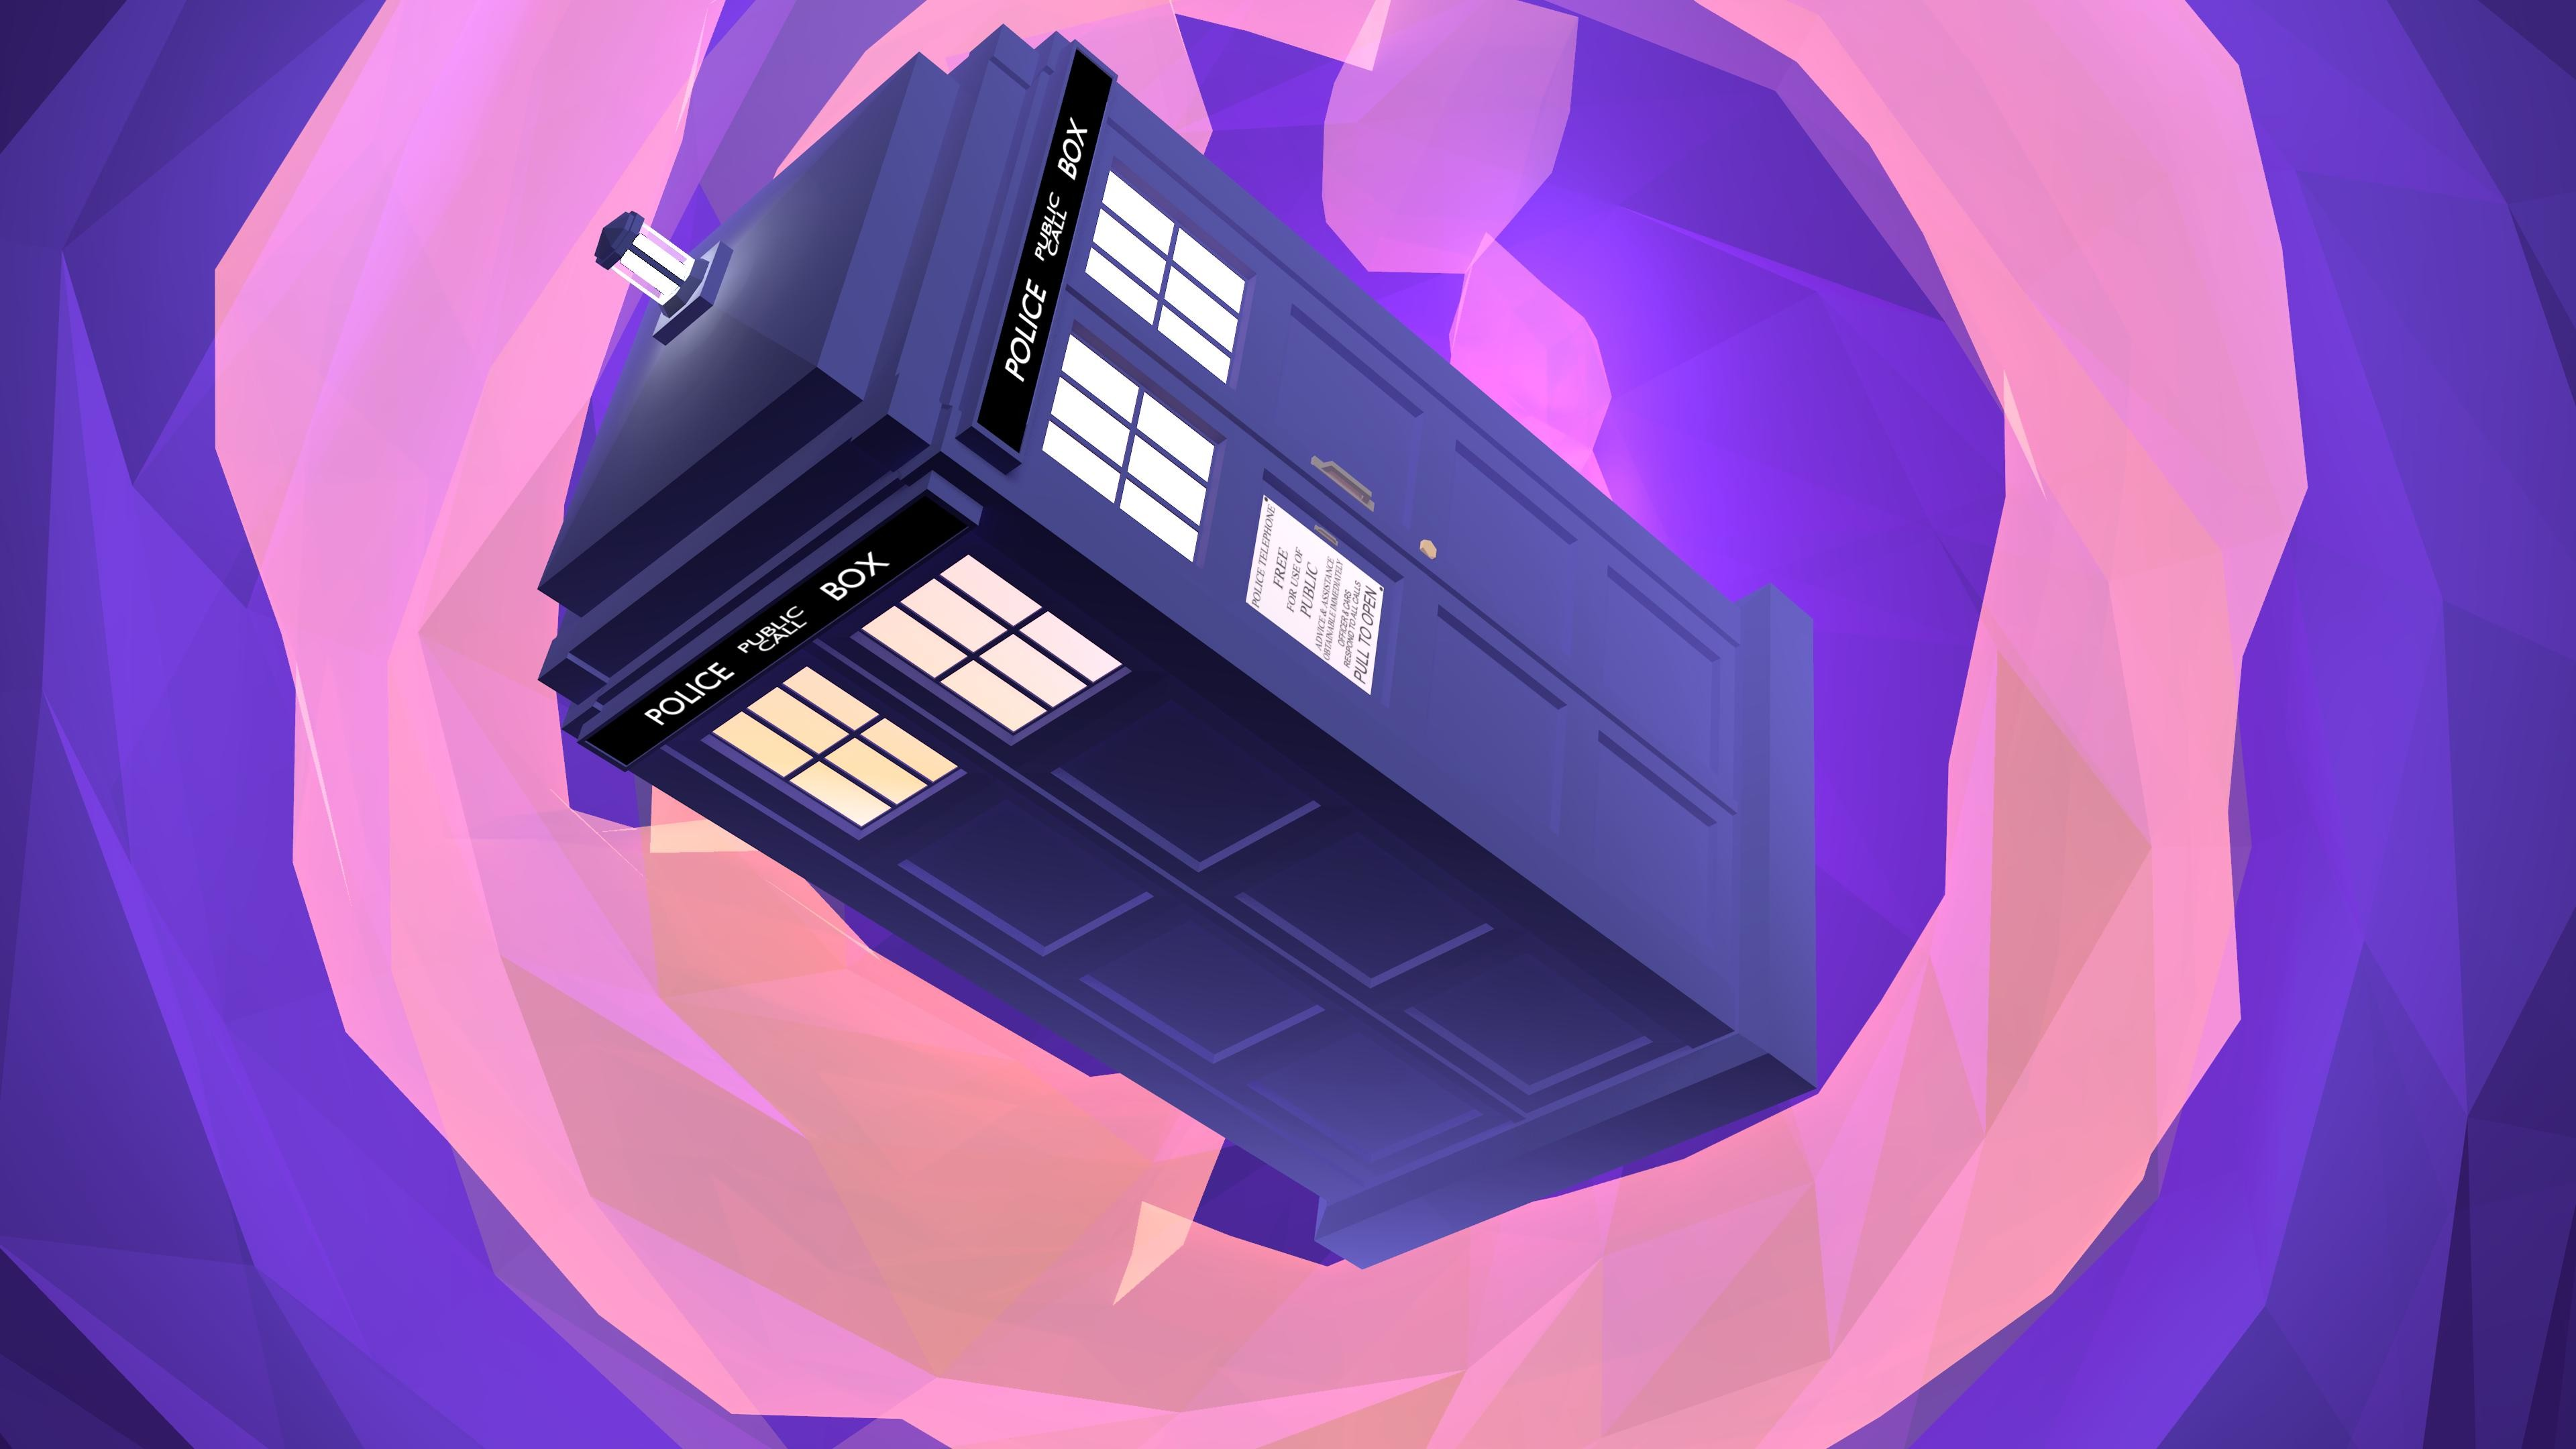 3840x2160 I've been playing with Low Poly modeling. Made the Tardis in the Time Vortex .